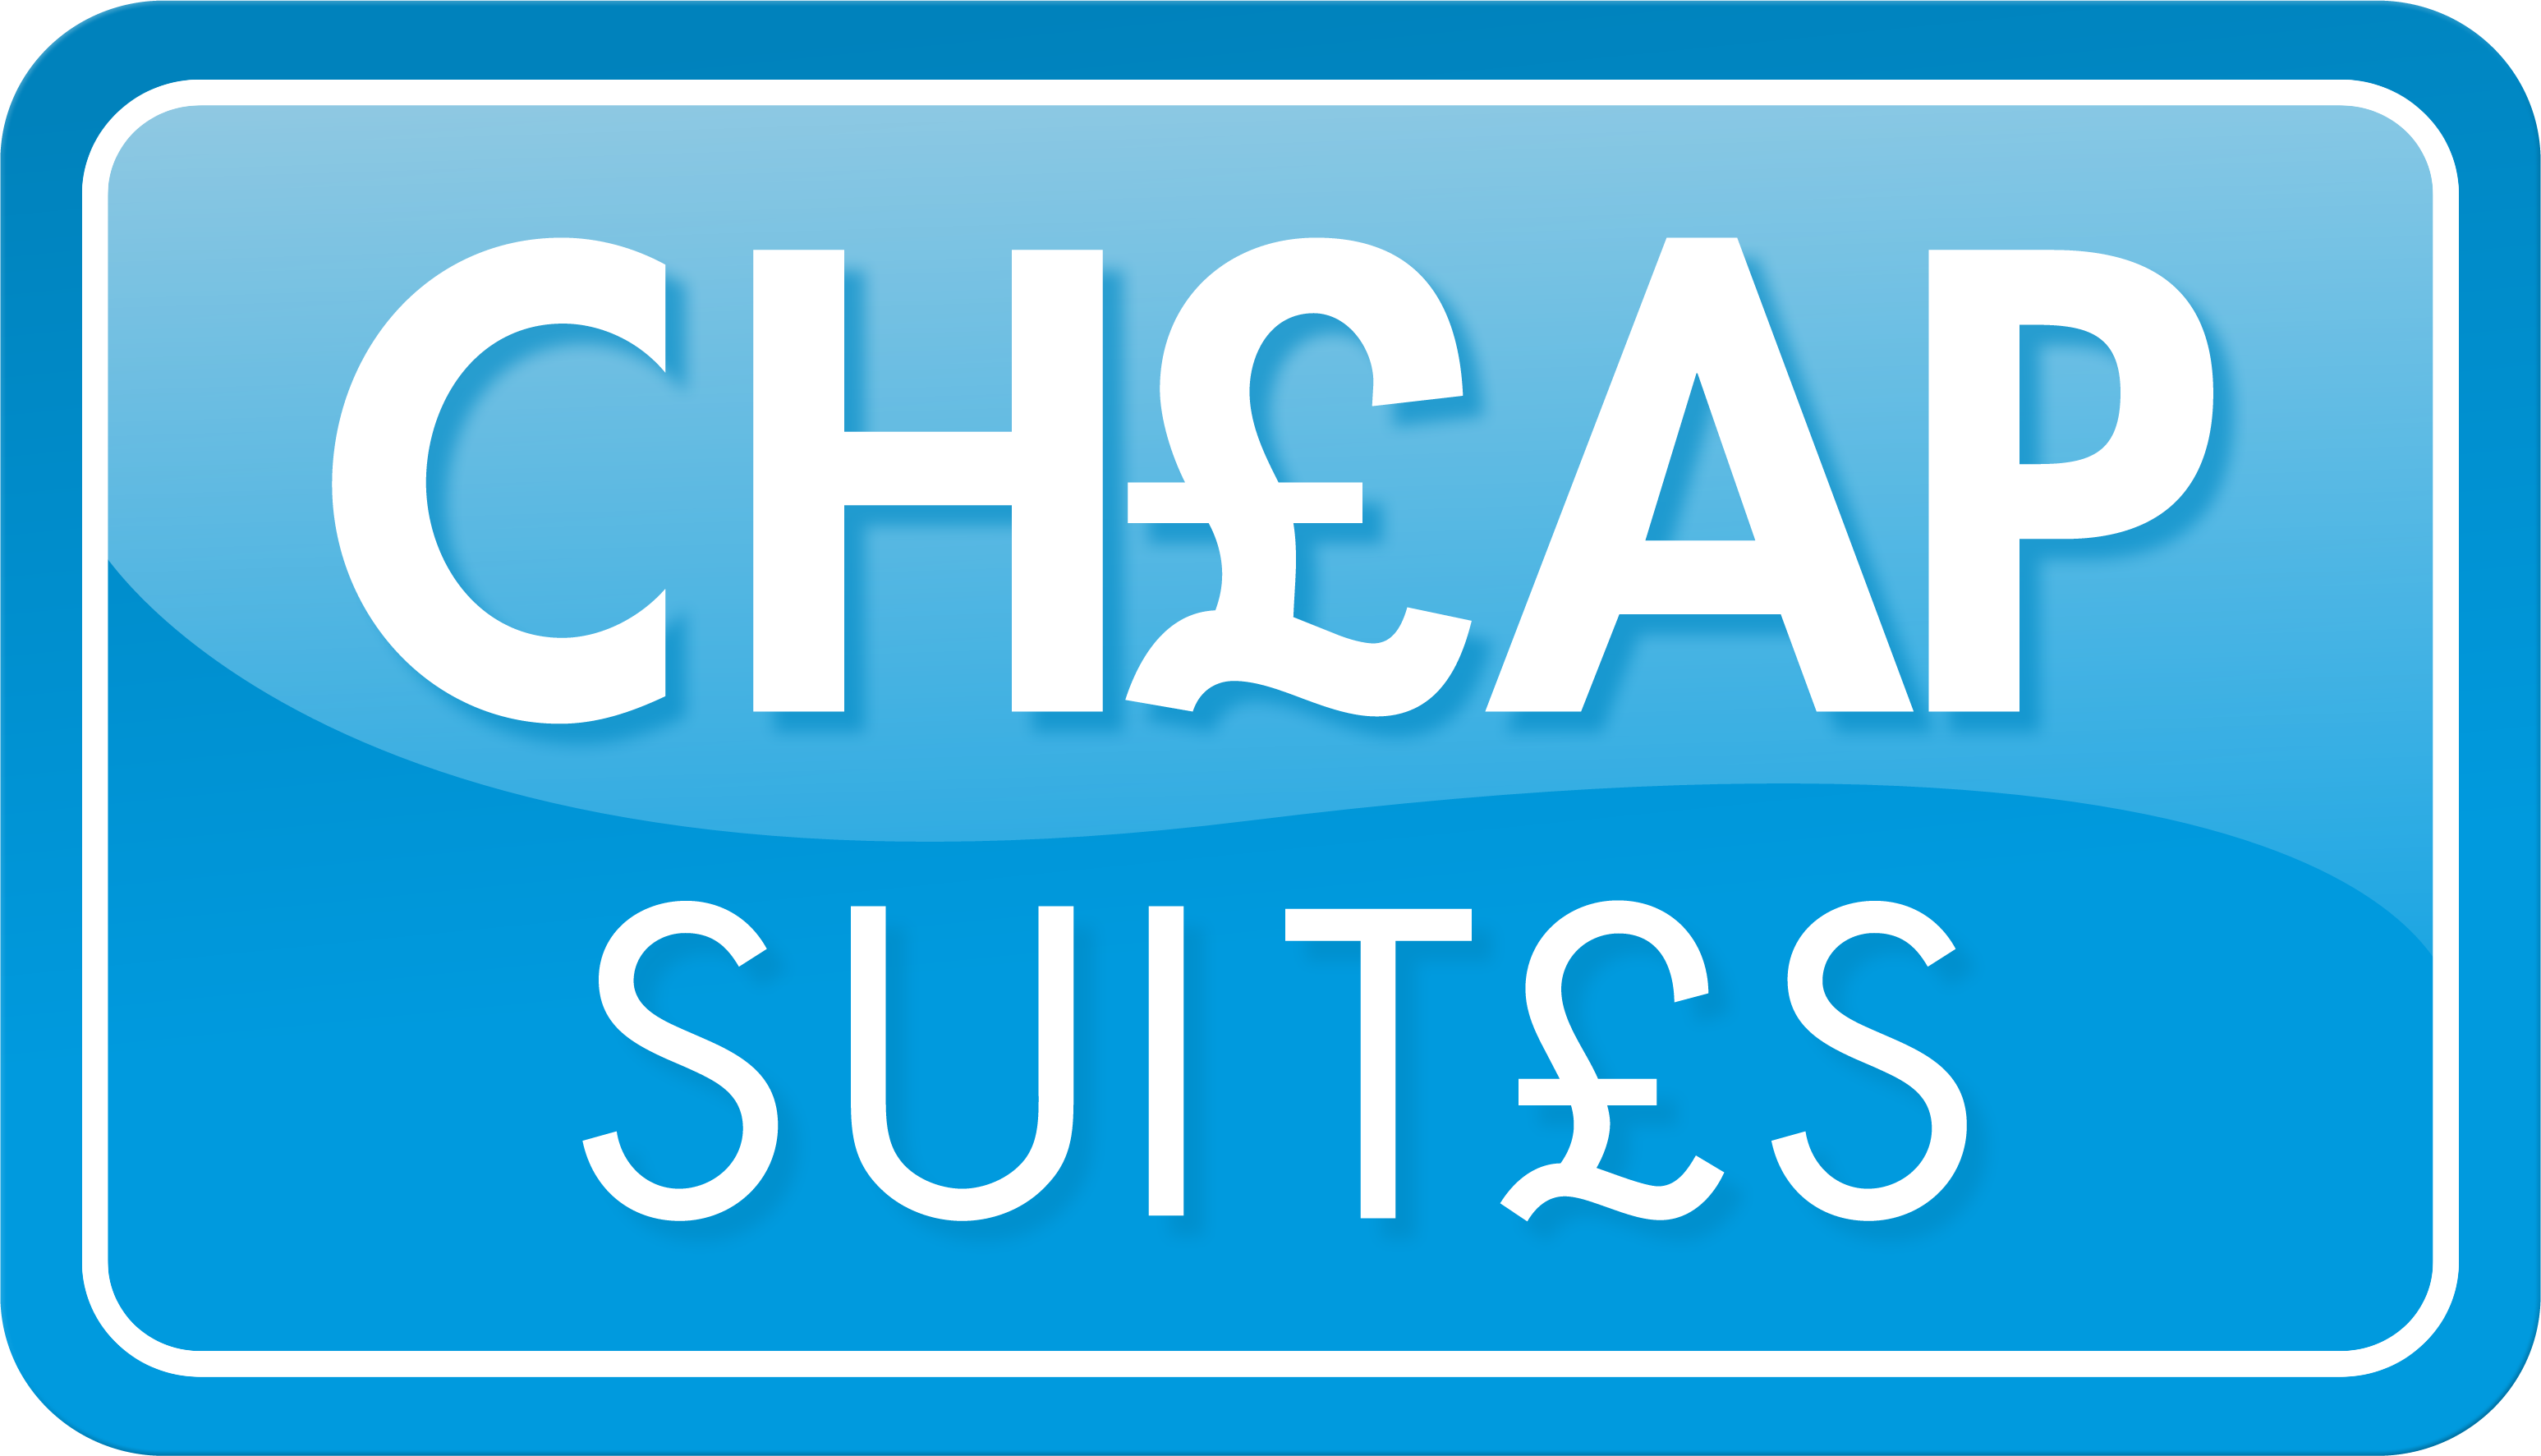 CheapSuites Logo